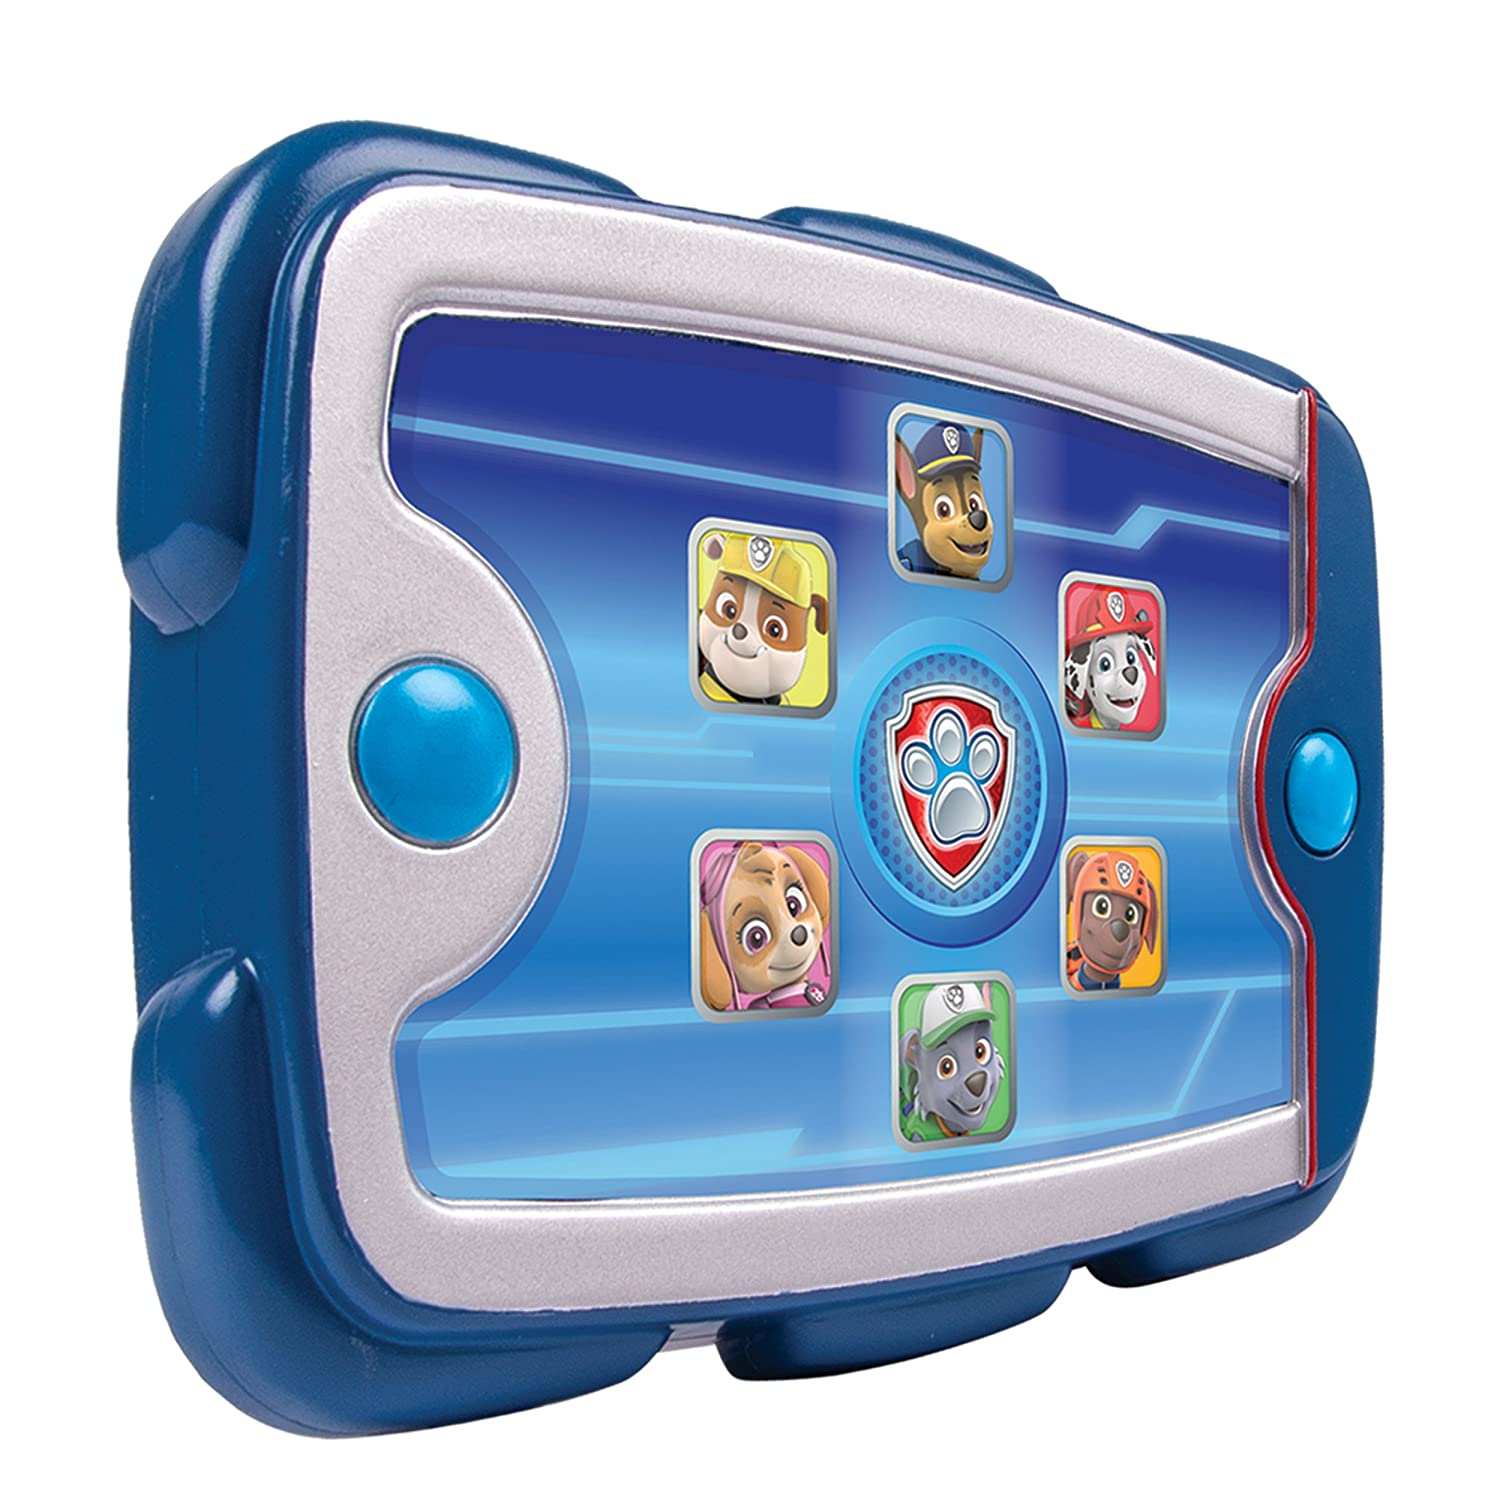 Paw Patrol Ryders Pad Spin Master Amazoncouk Toys Games